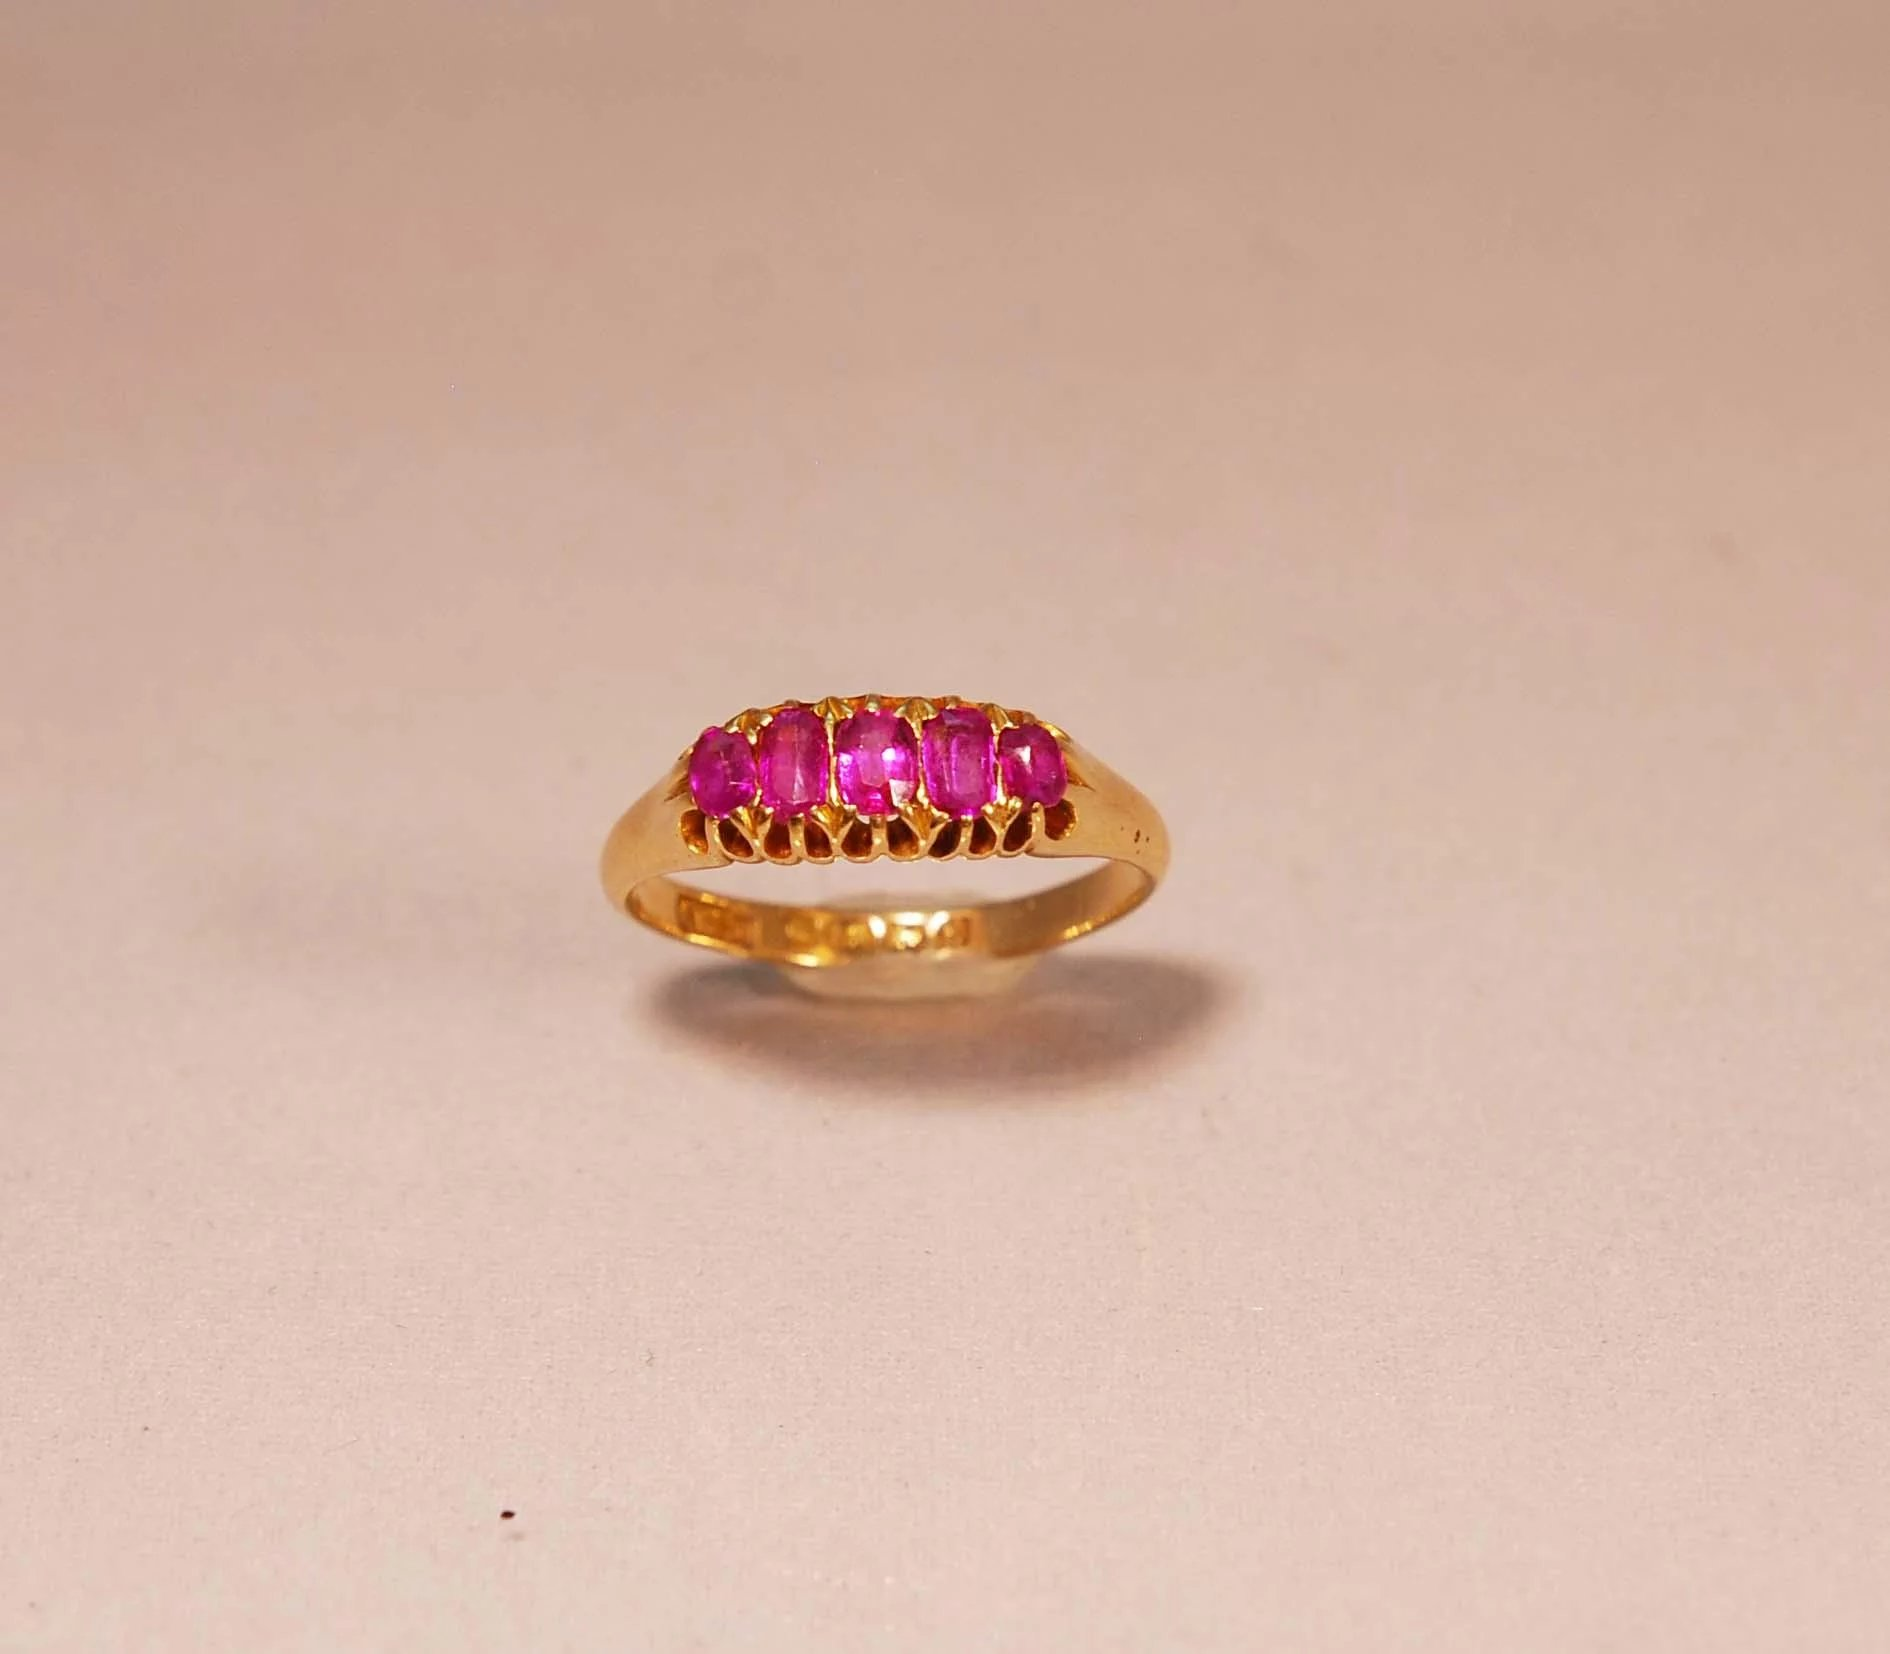 Antique Edwardian C. 1907 5 Stone Ruby Ring in 18k Yellow Gold ...